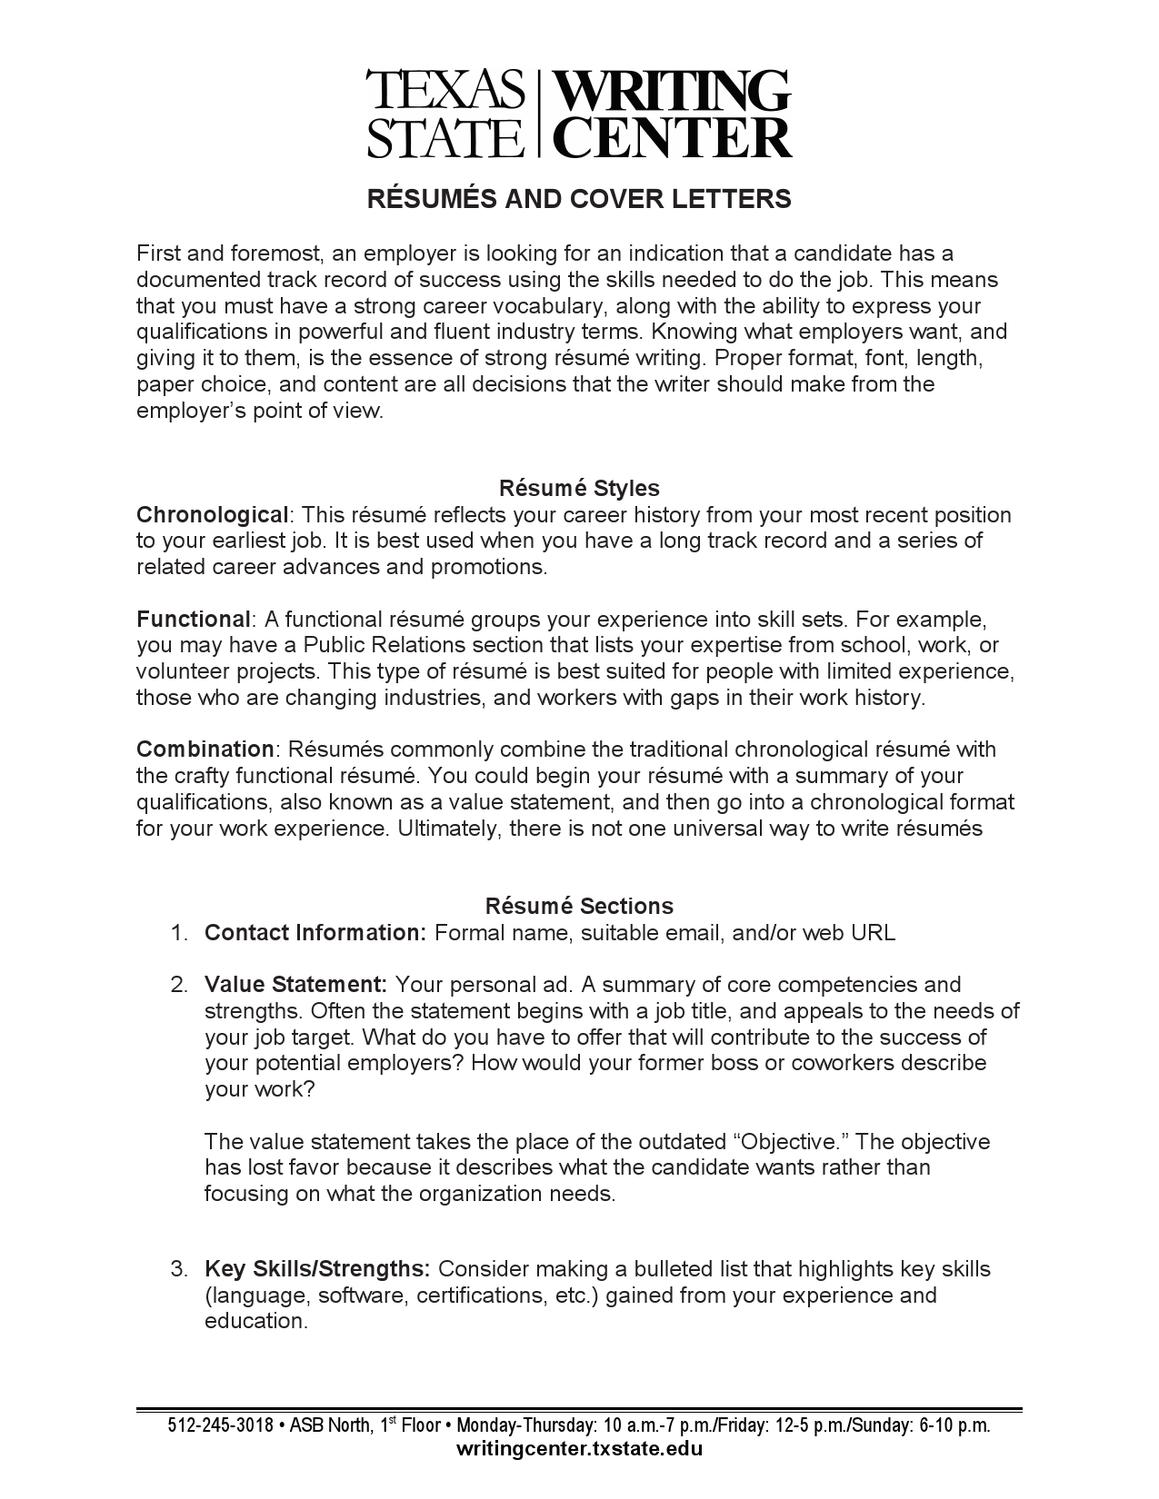 resume coverletter by Texas State Writing Center - issuu